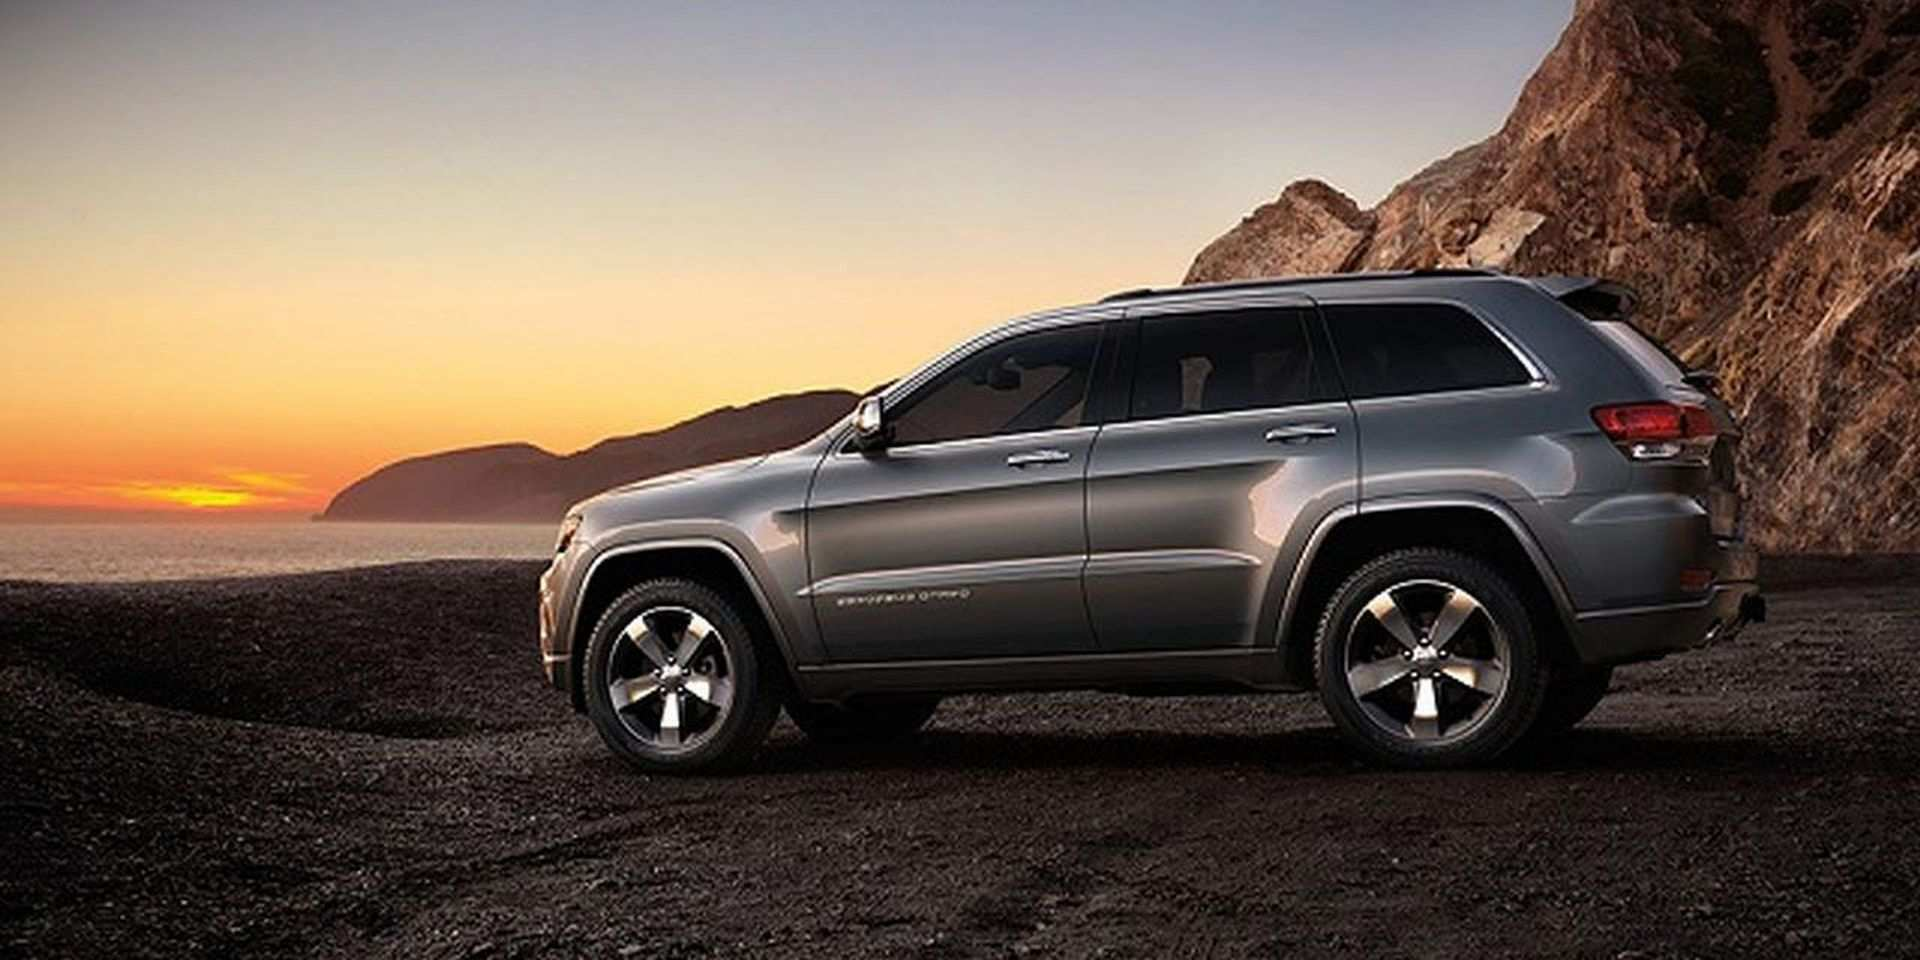 83 All New 2020 Jeep Wagoneer New Concept